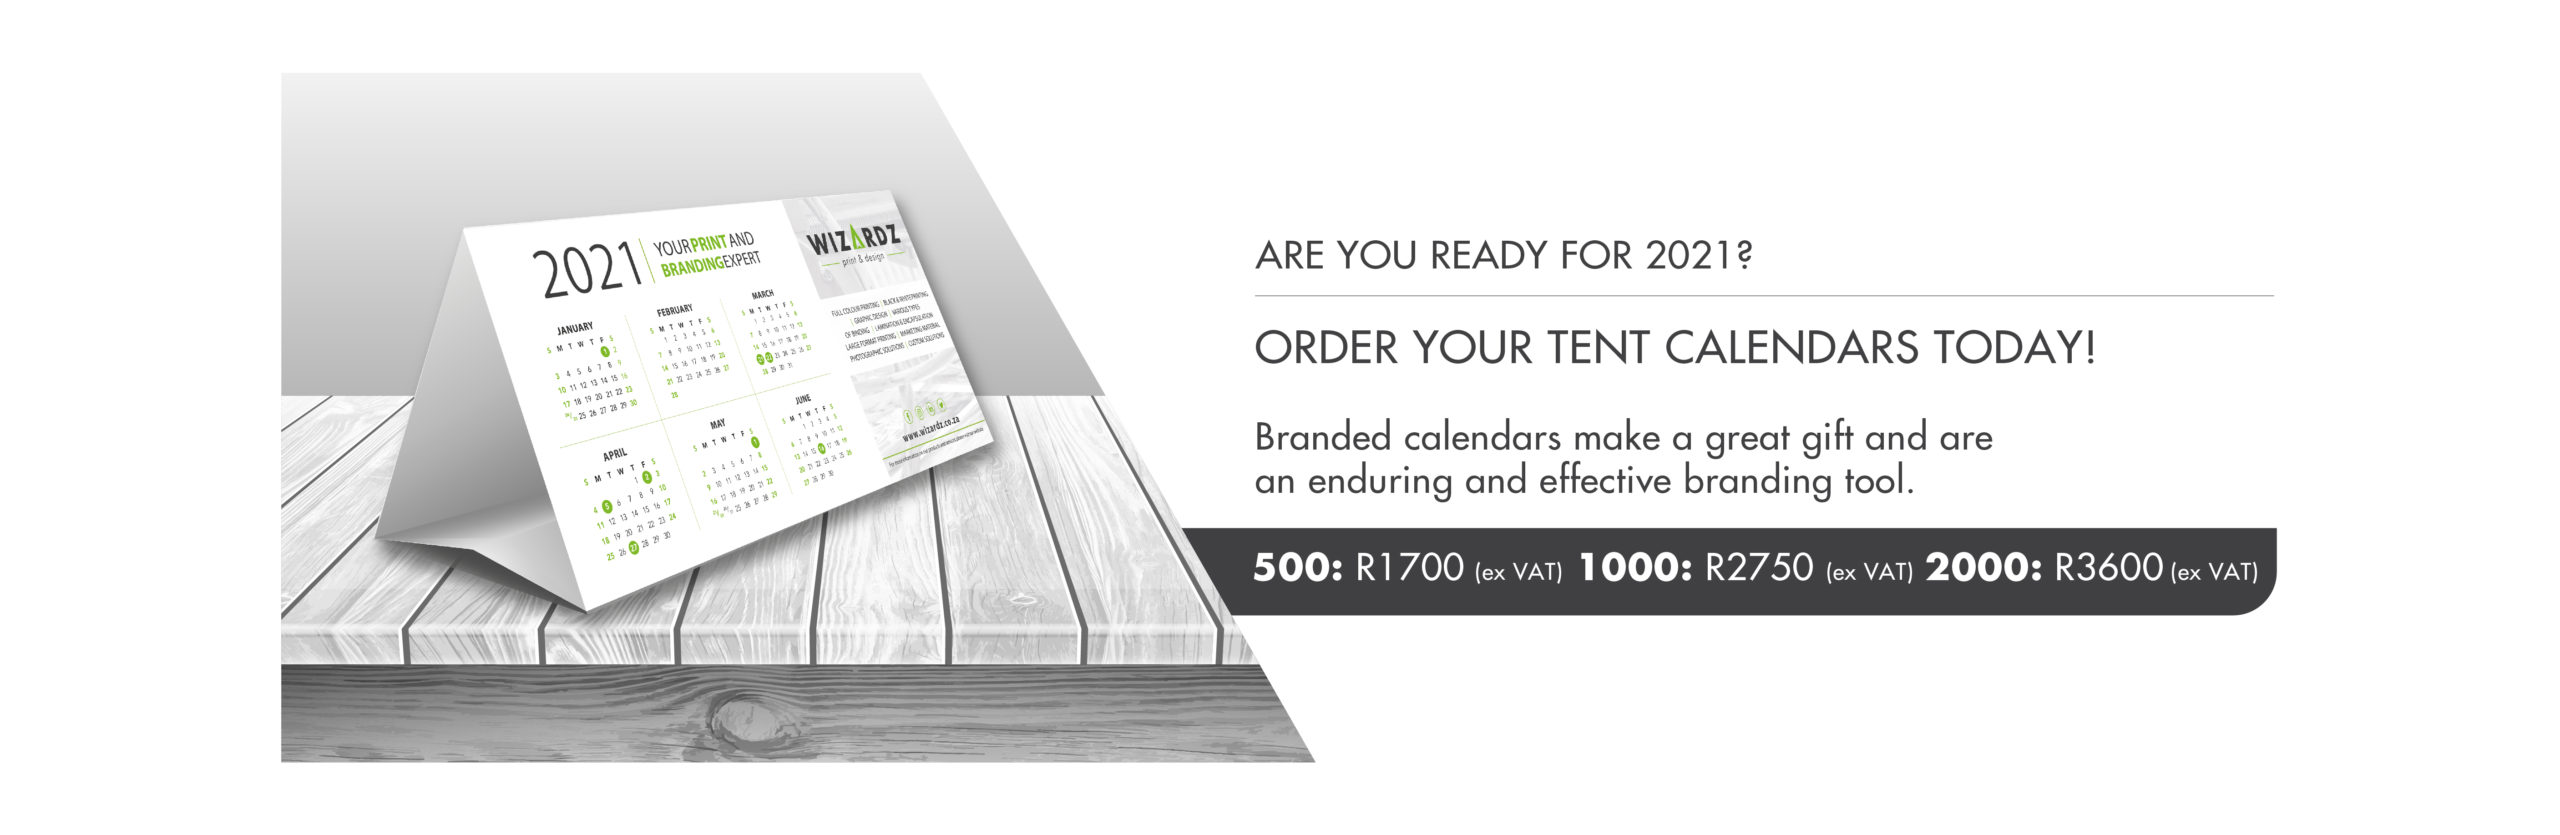 Tent Calendar Promotions Website Banner